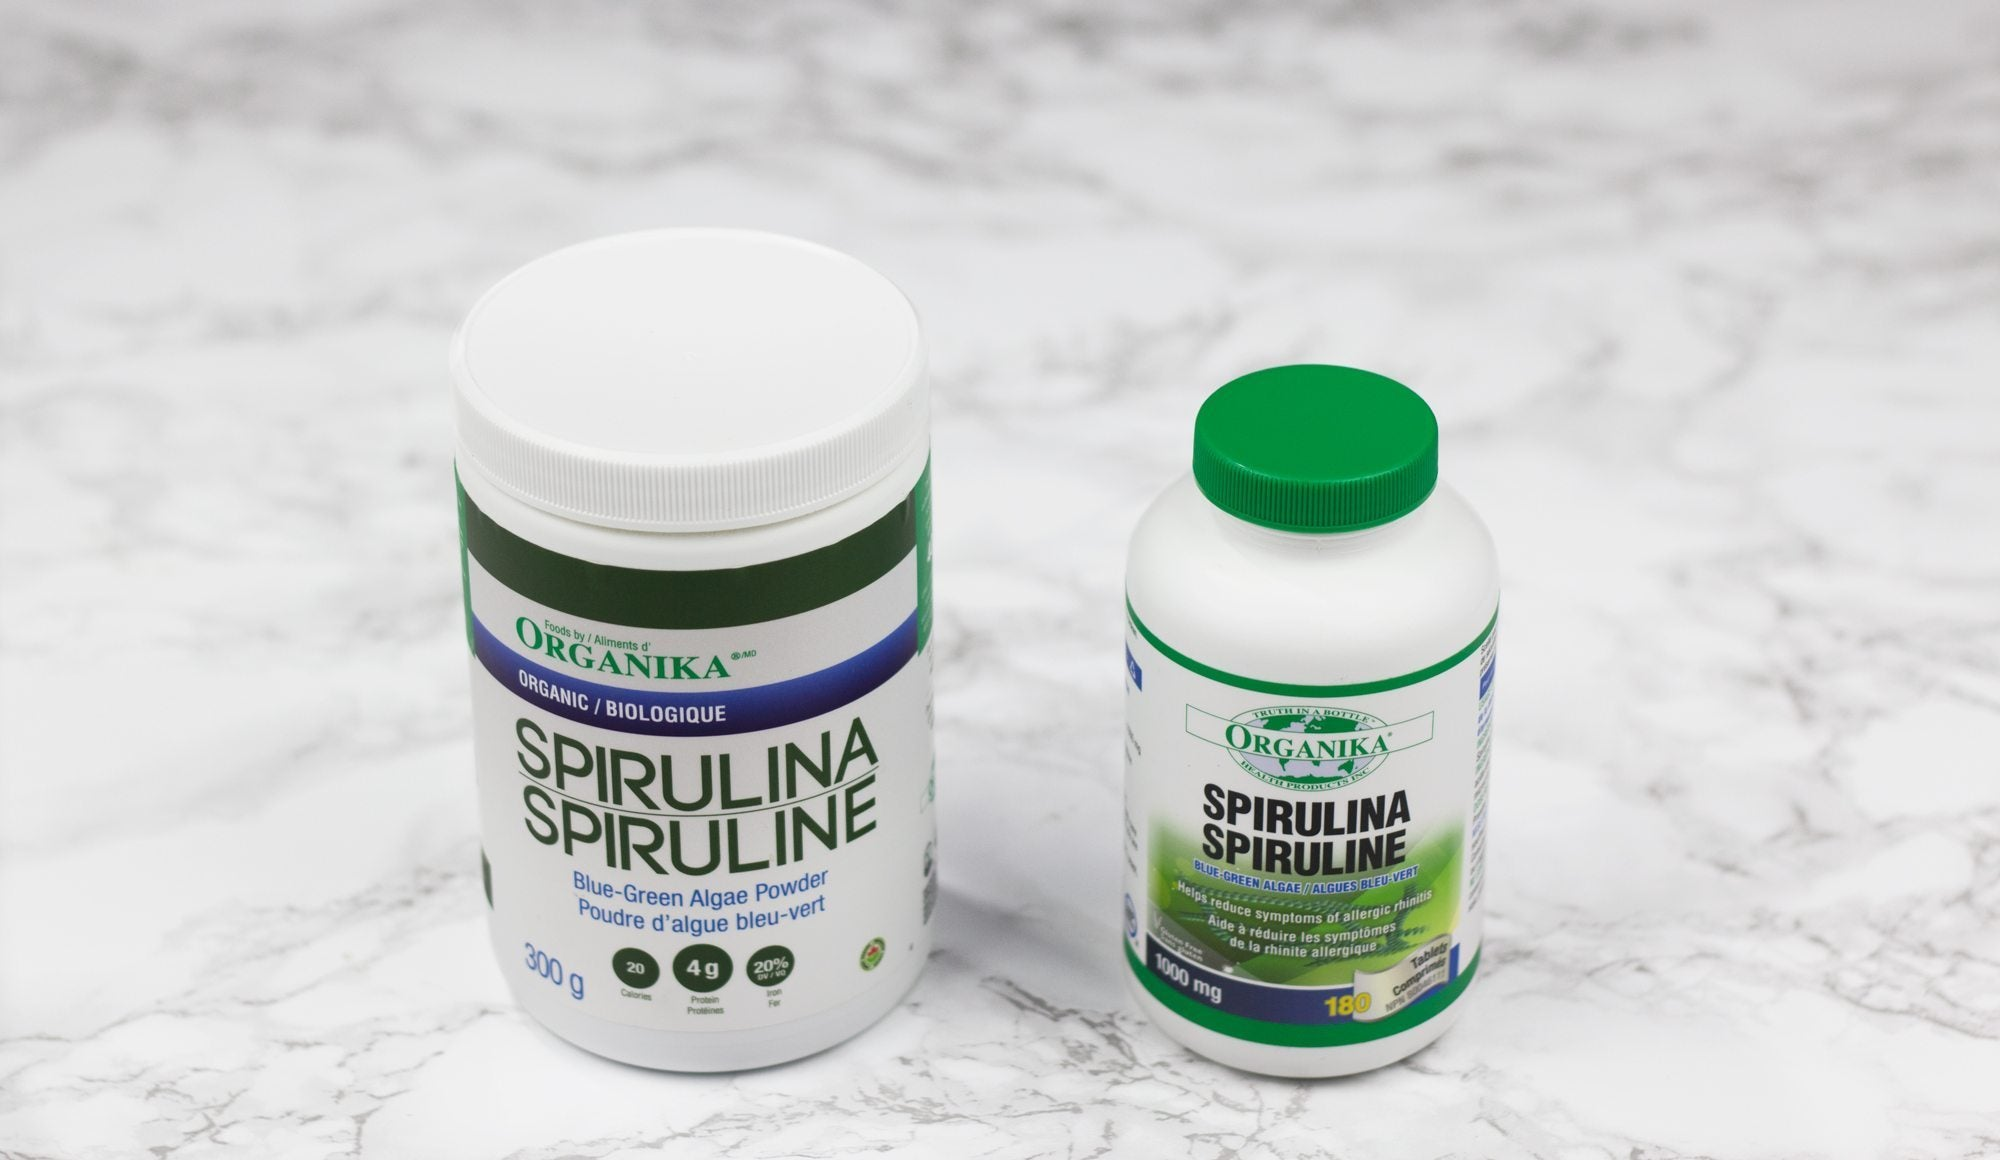 spirulina is one of the foods for allergies